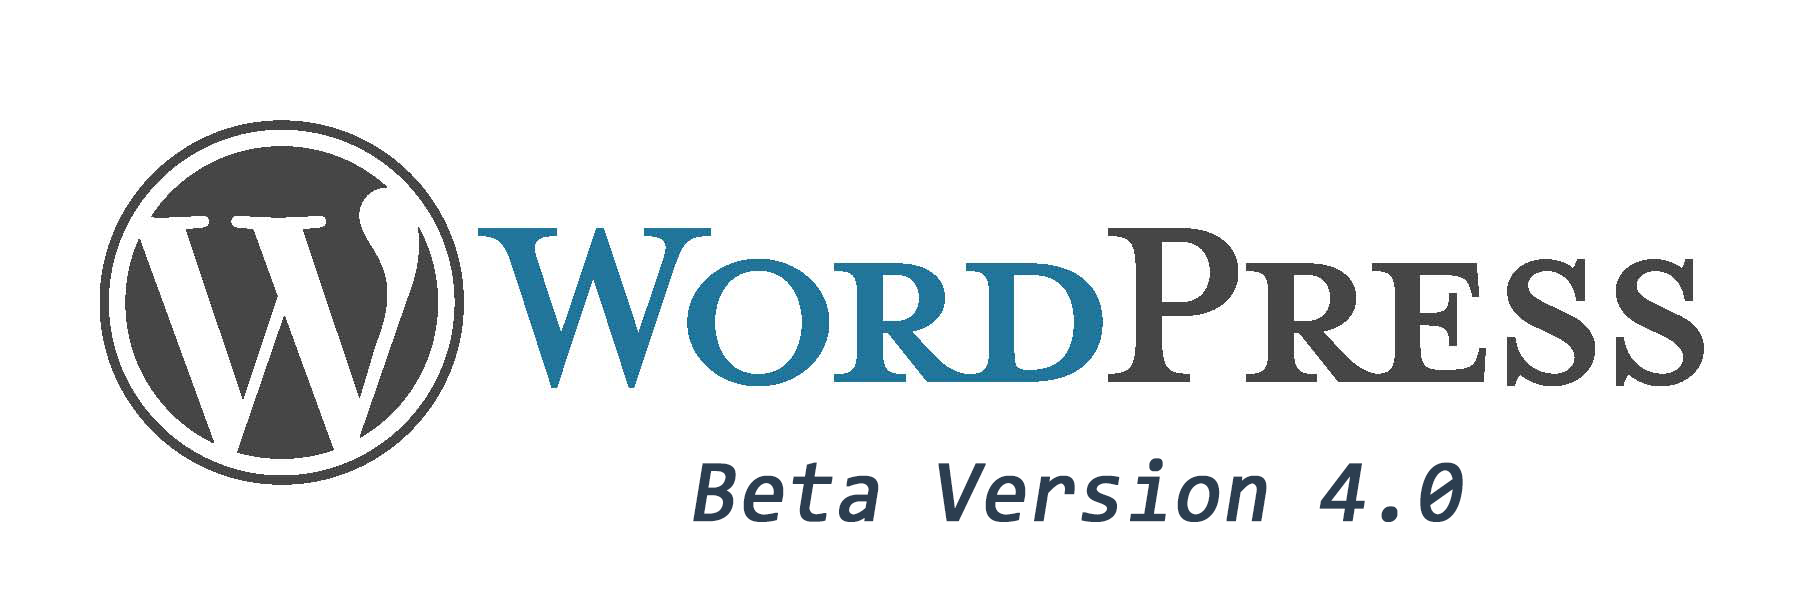 Wordpress beta 4